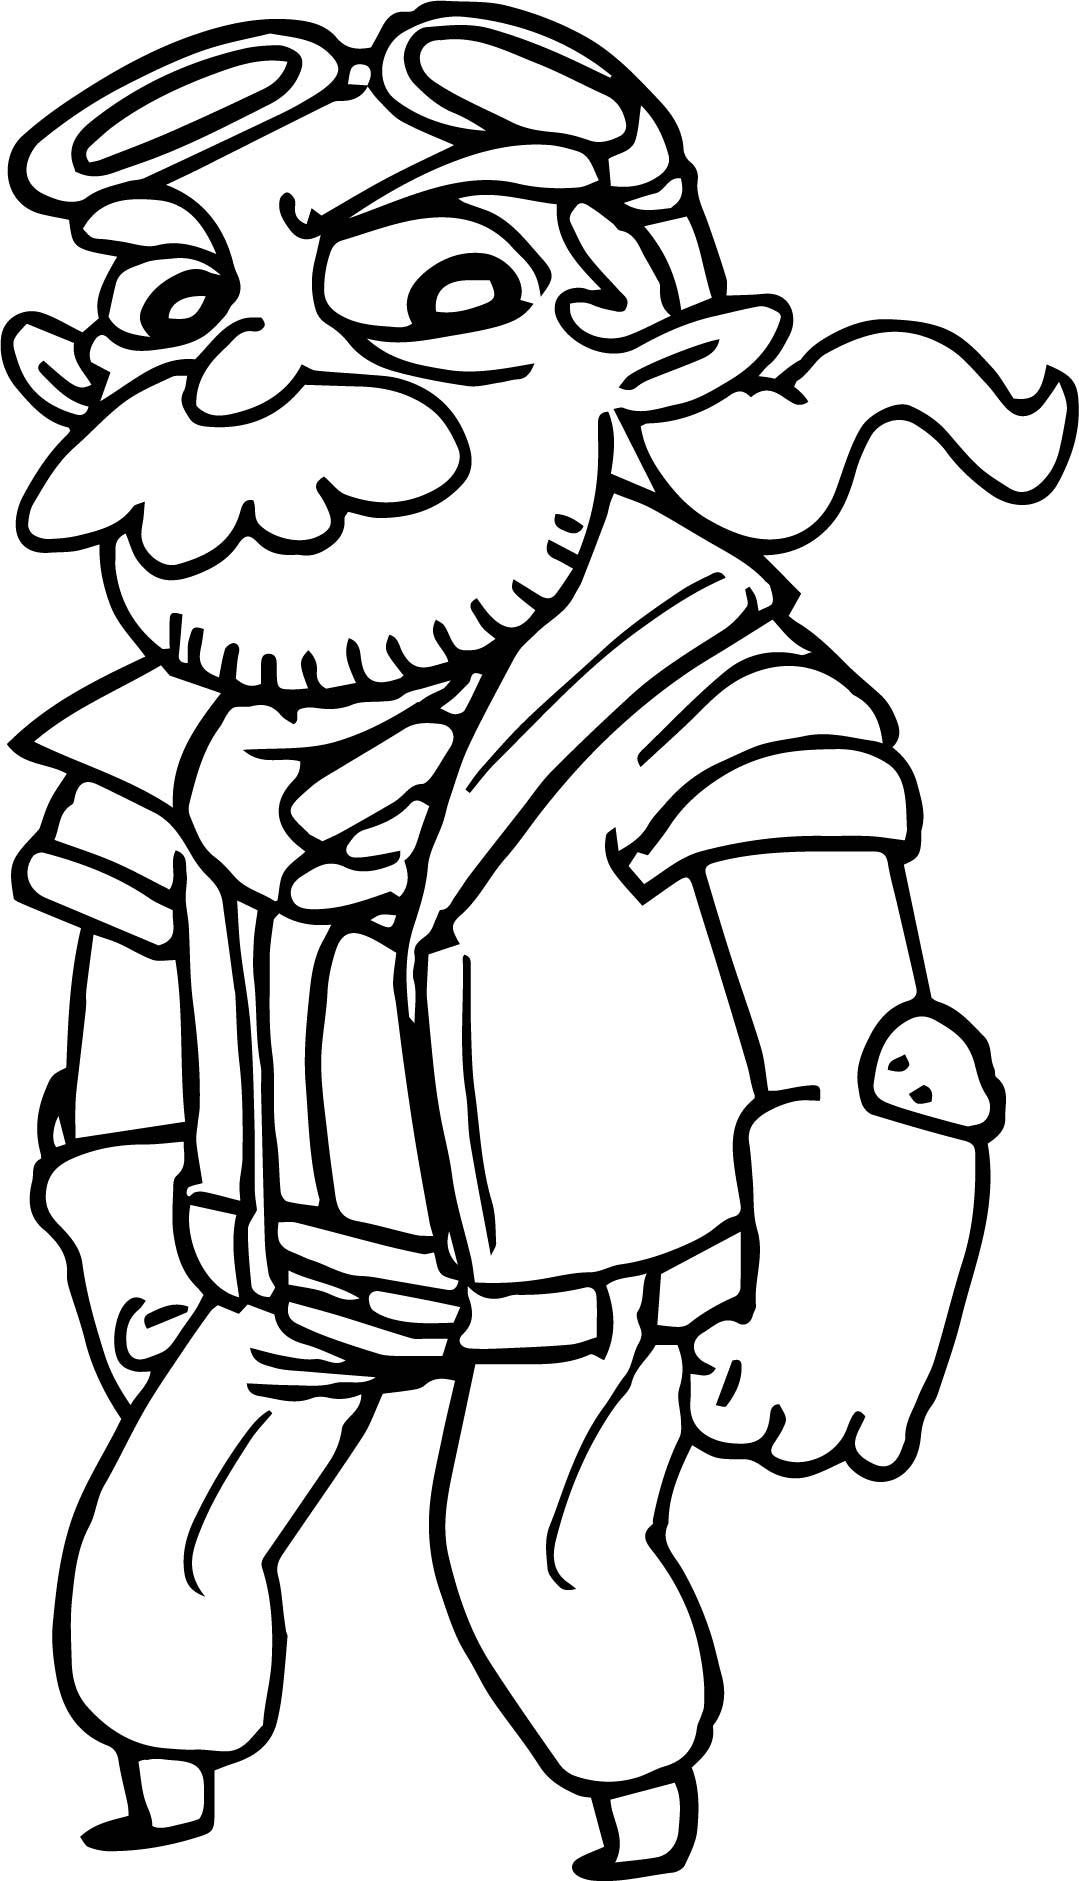 Cartoon Fantasy Old Wise Mustache Beard Guy Character Coloring Page